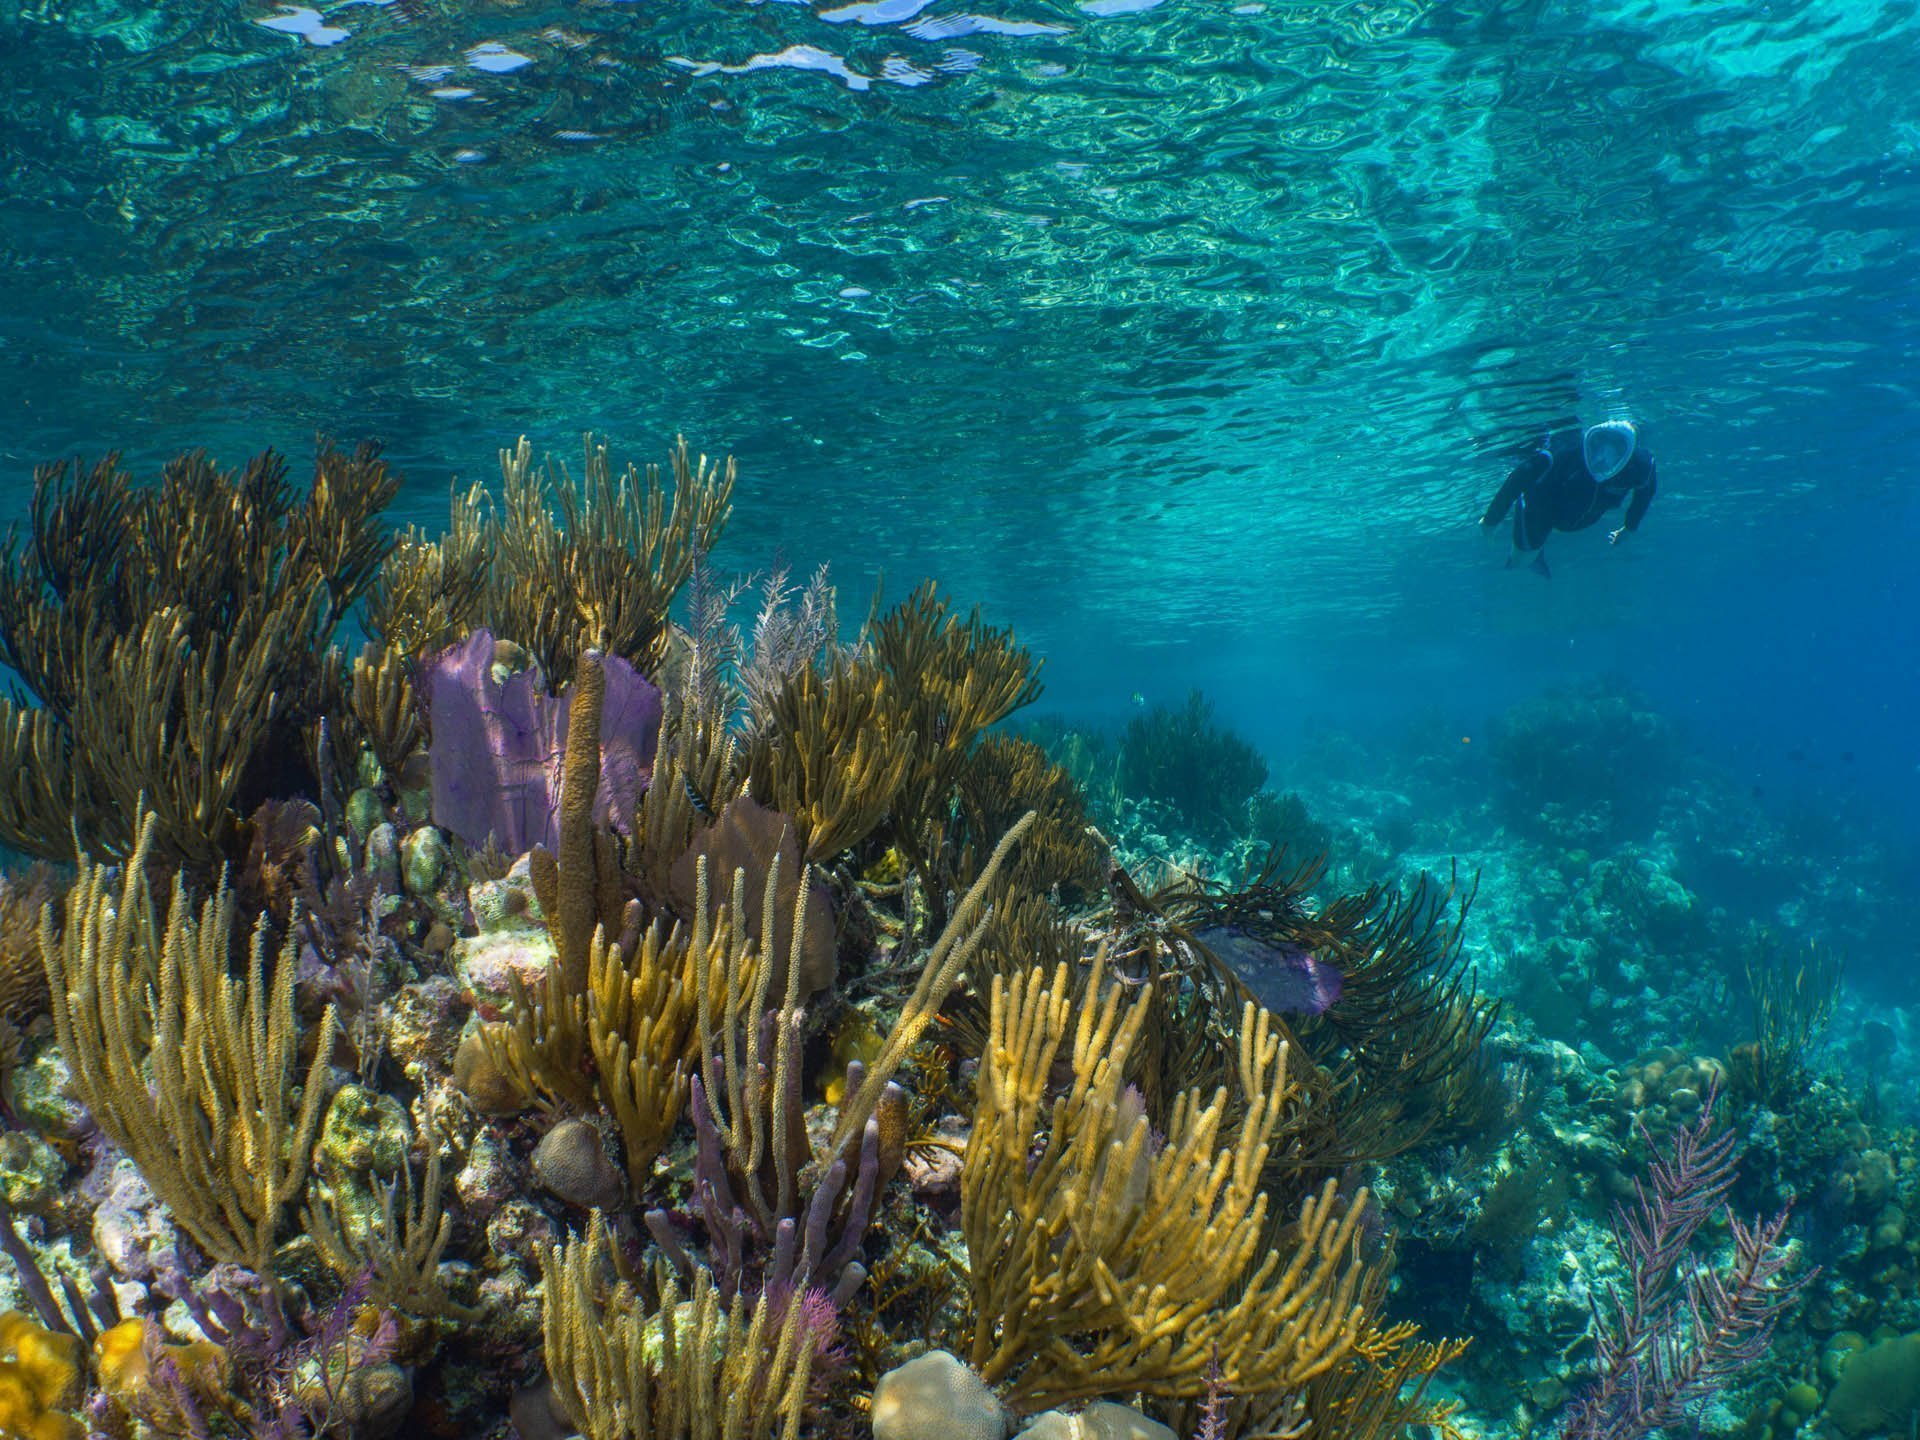 Caribbean reefscape with snorkeler above